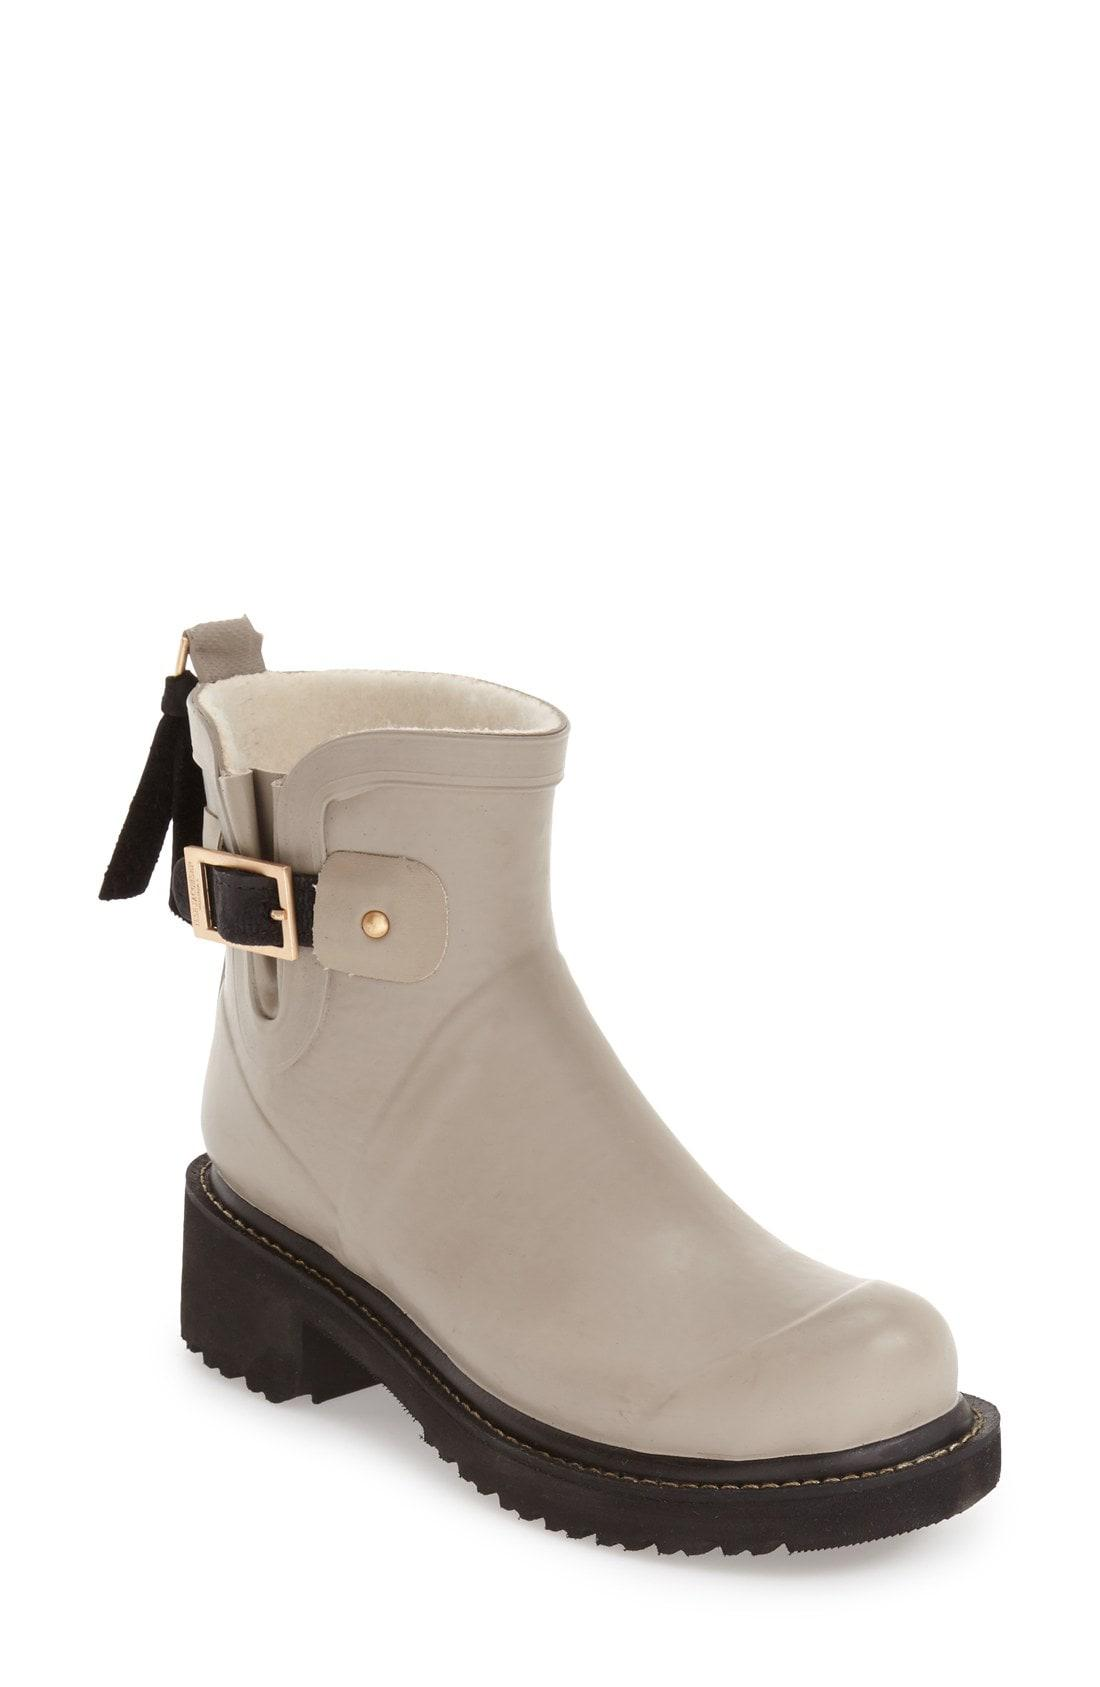 daf15eb4ab19 Lyst - Ilse Jacobsen Short Waterproof Rubber Boot in Brown